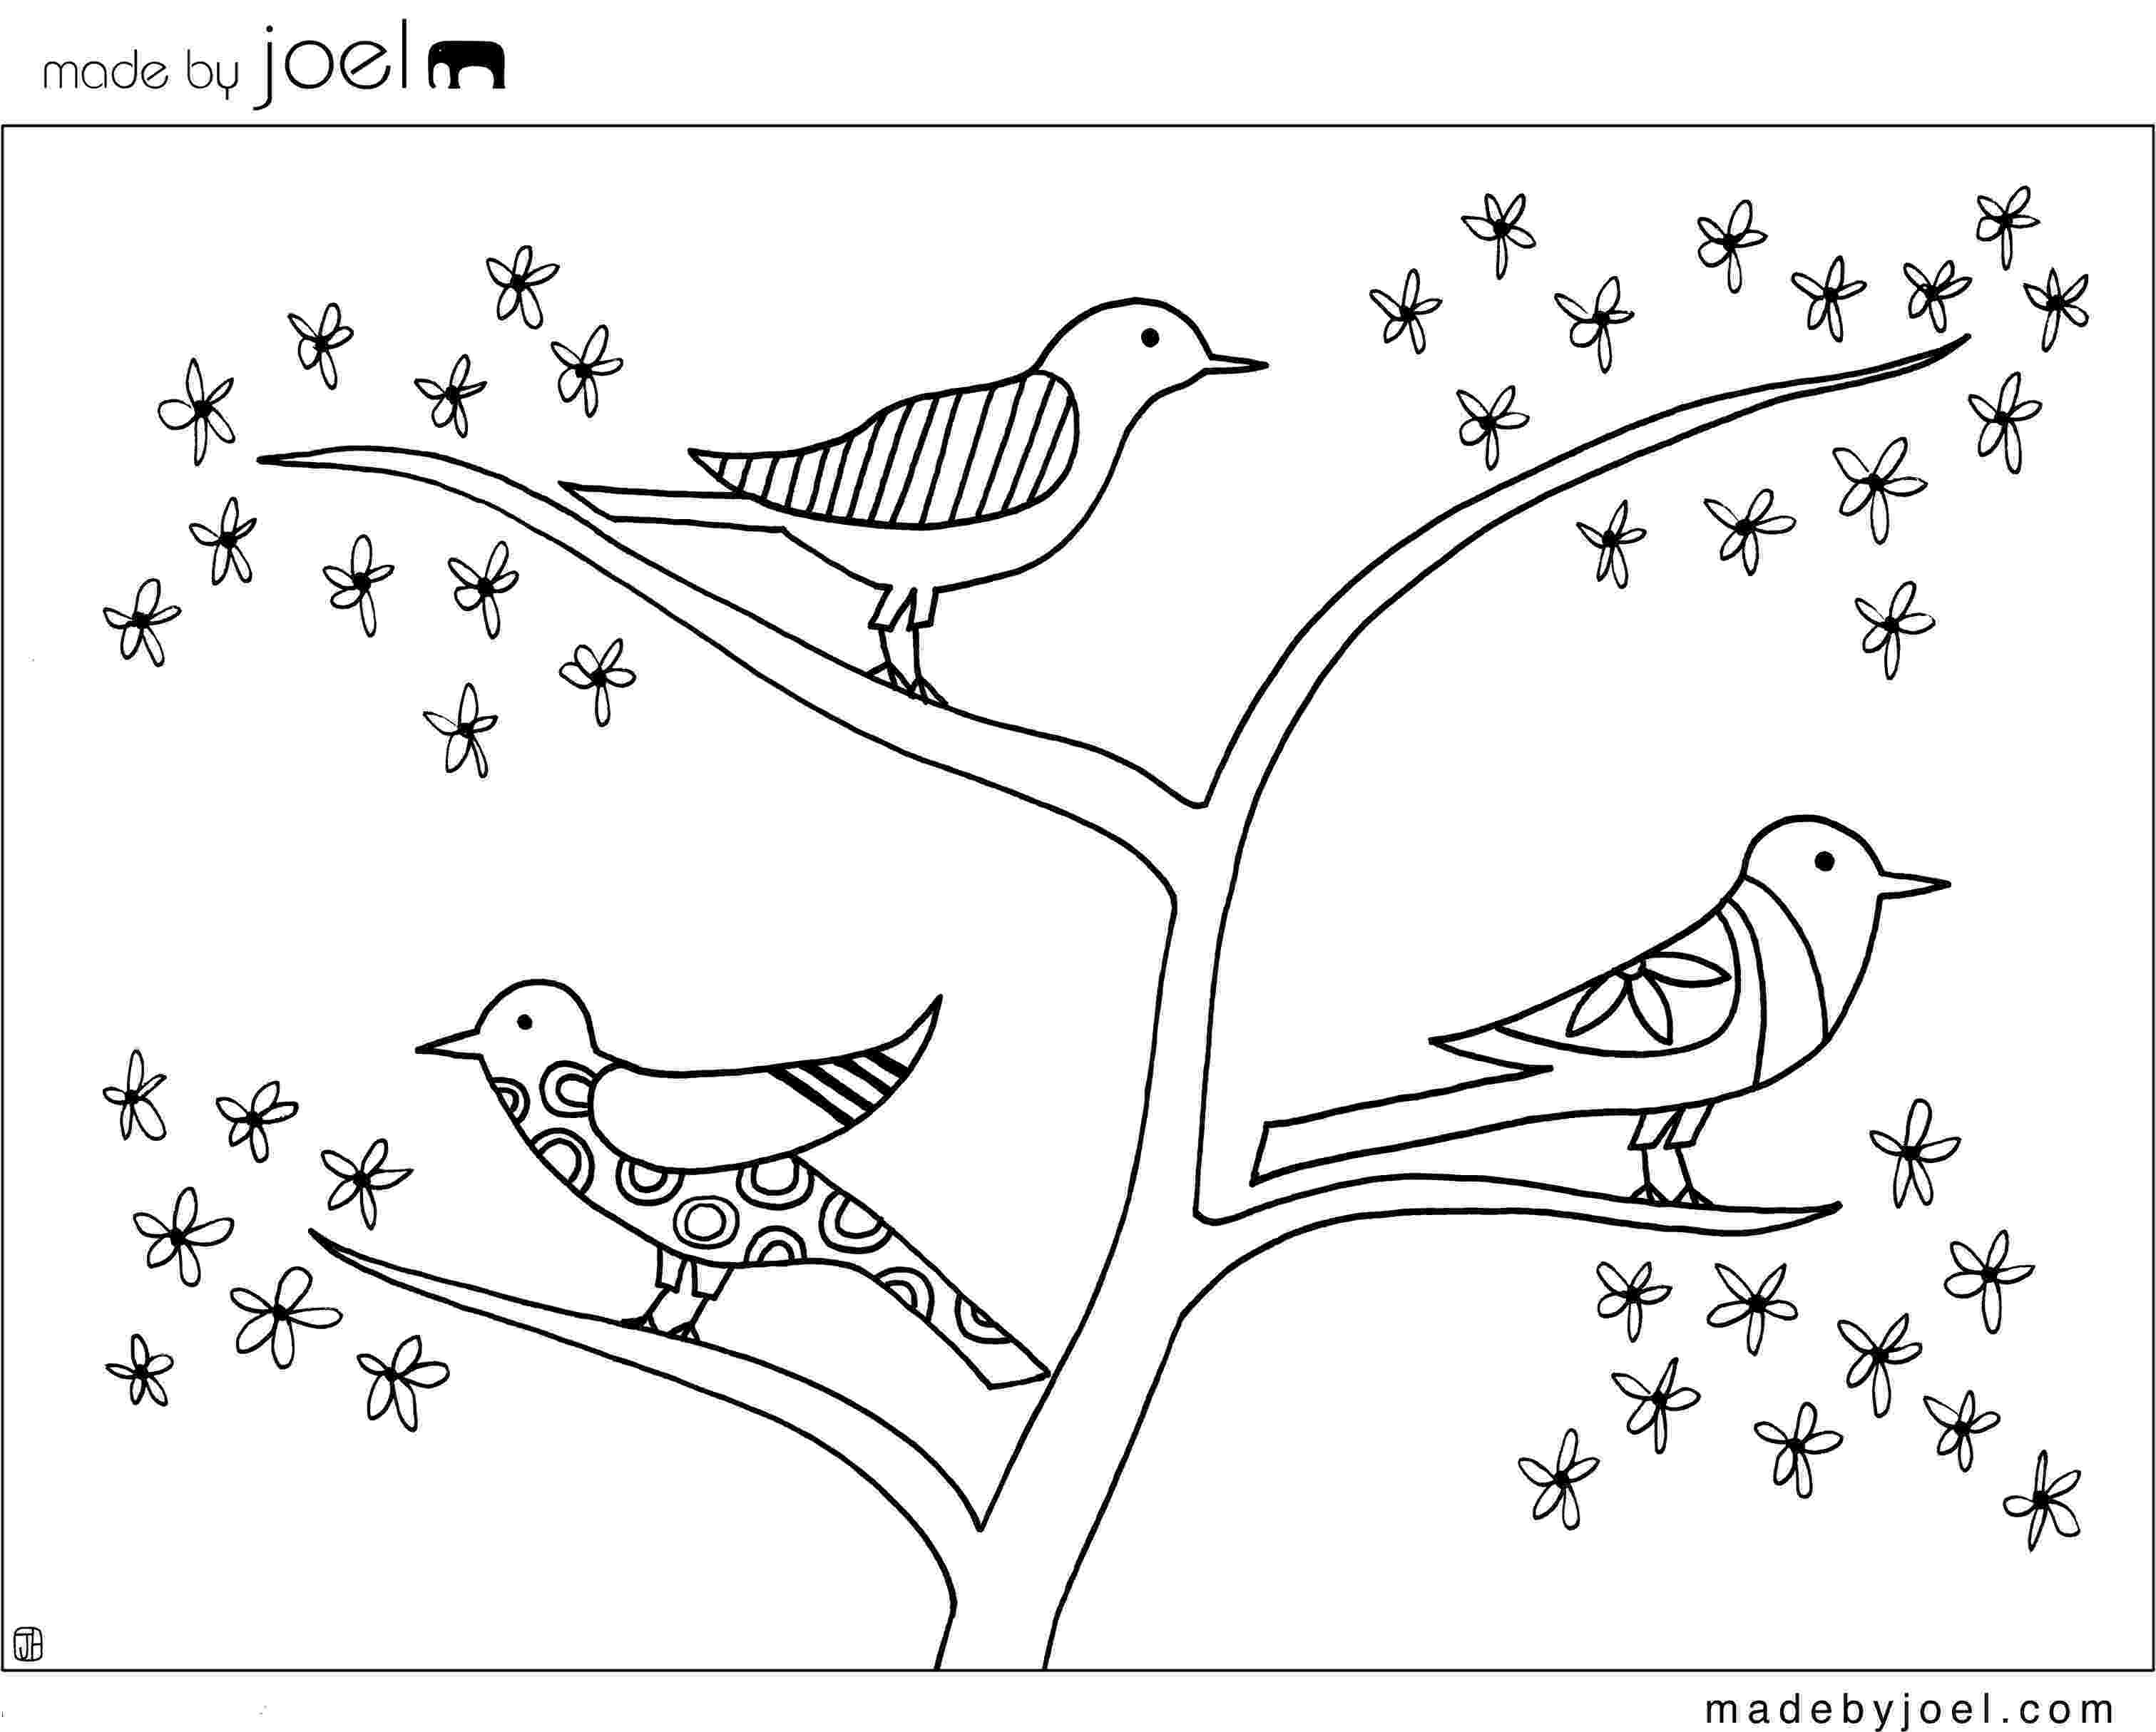 bird printable made by joel giveaway winners and new coloring sheet bird printable